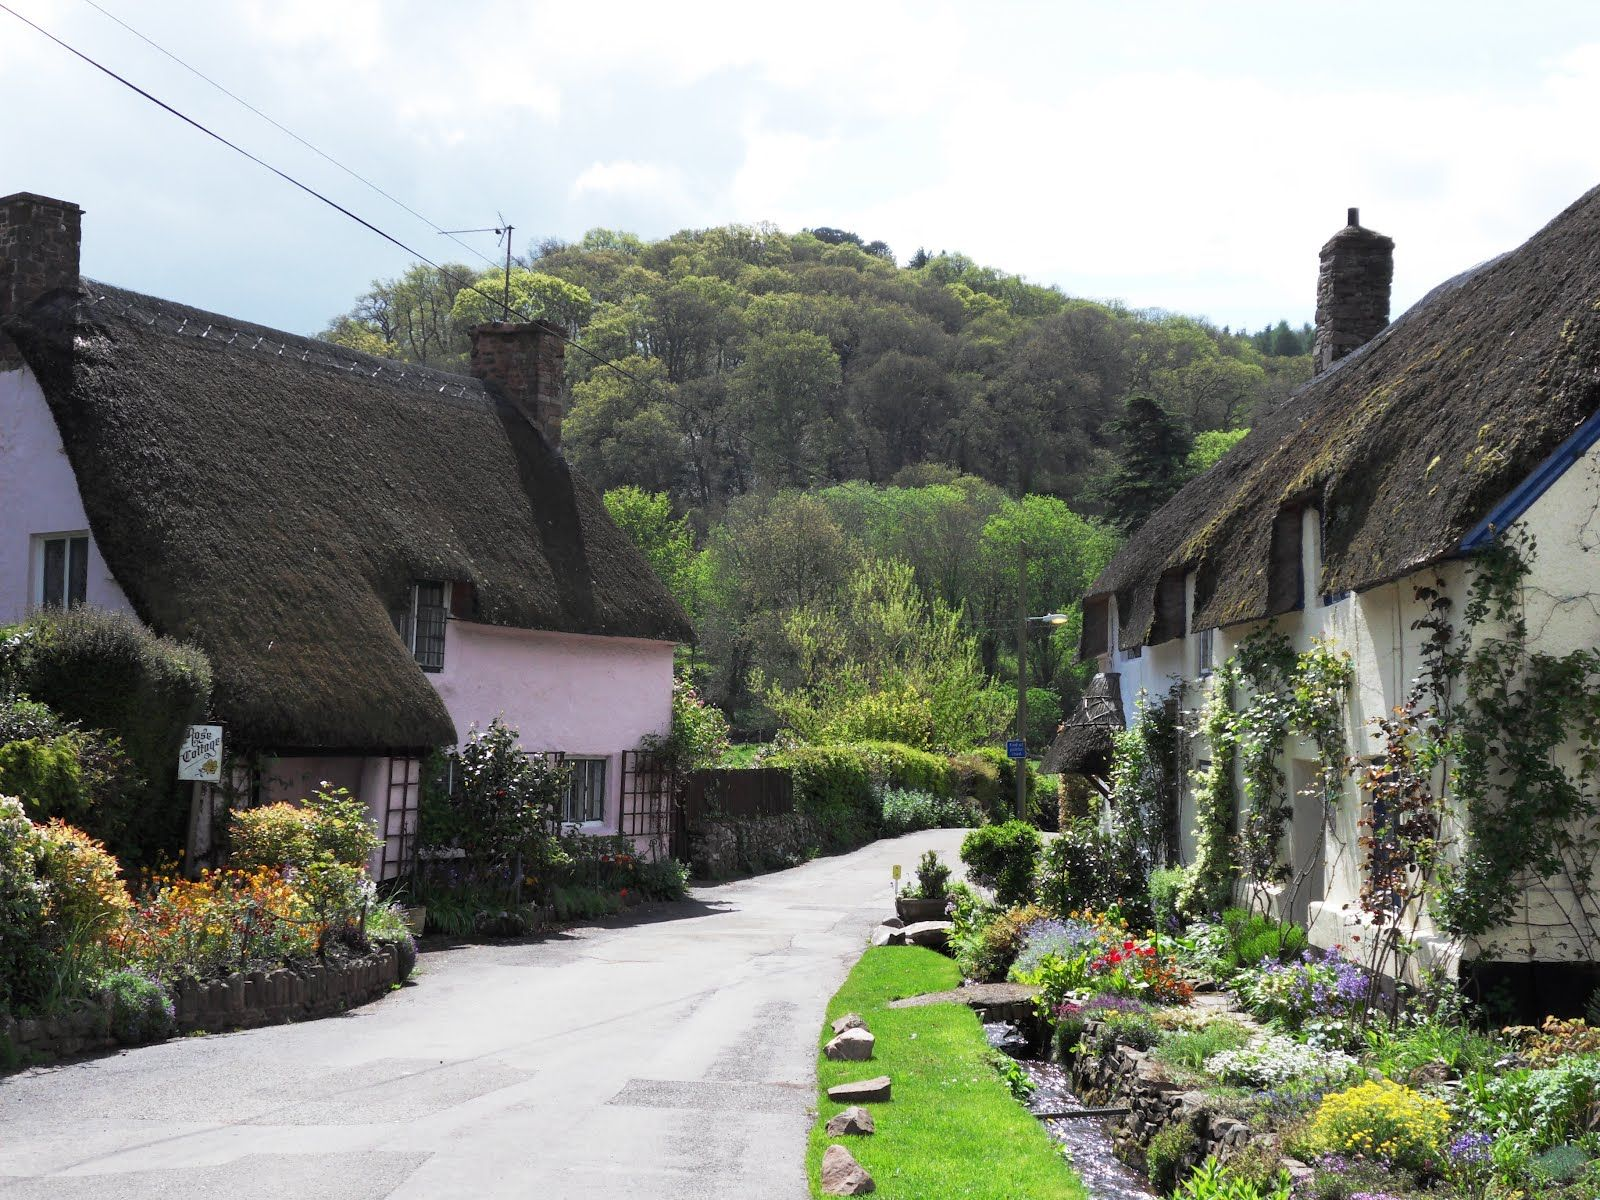 The Village Of Dunster In Somerset England Basks In The